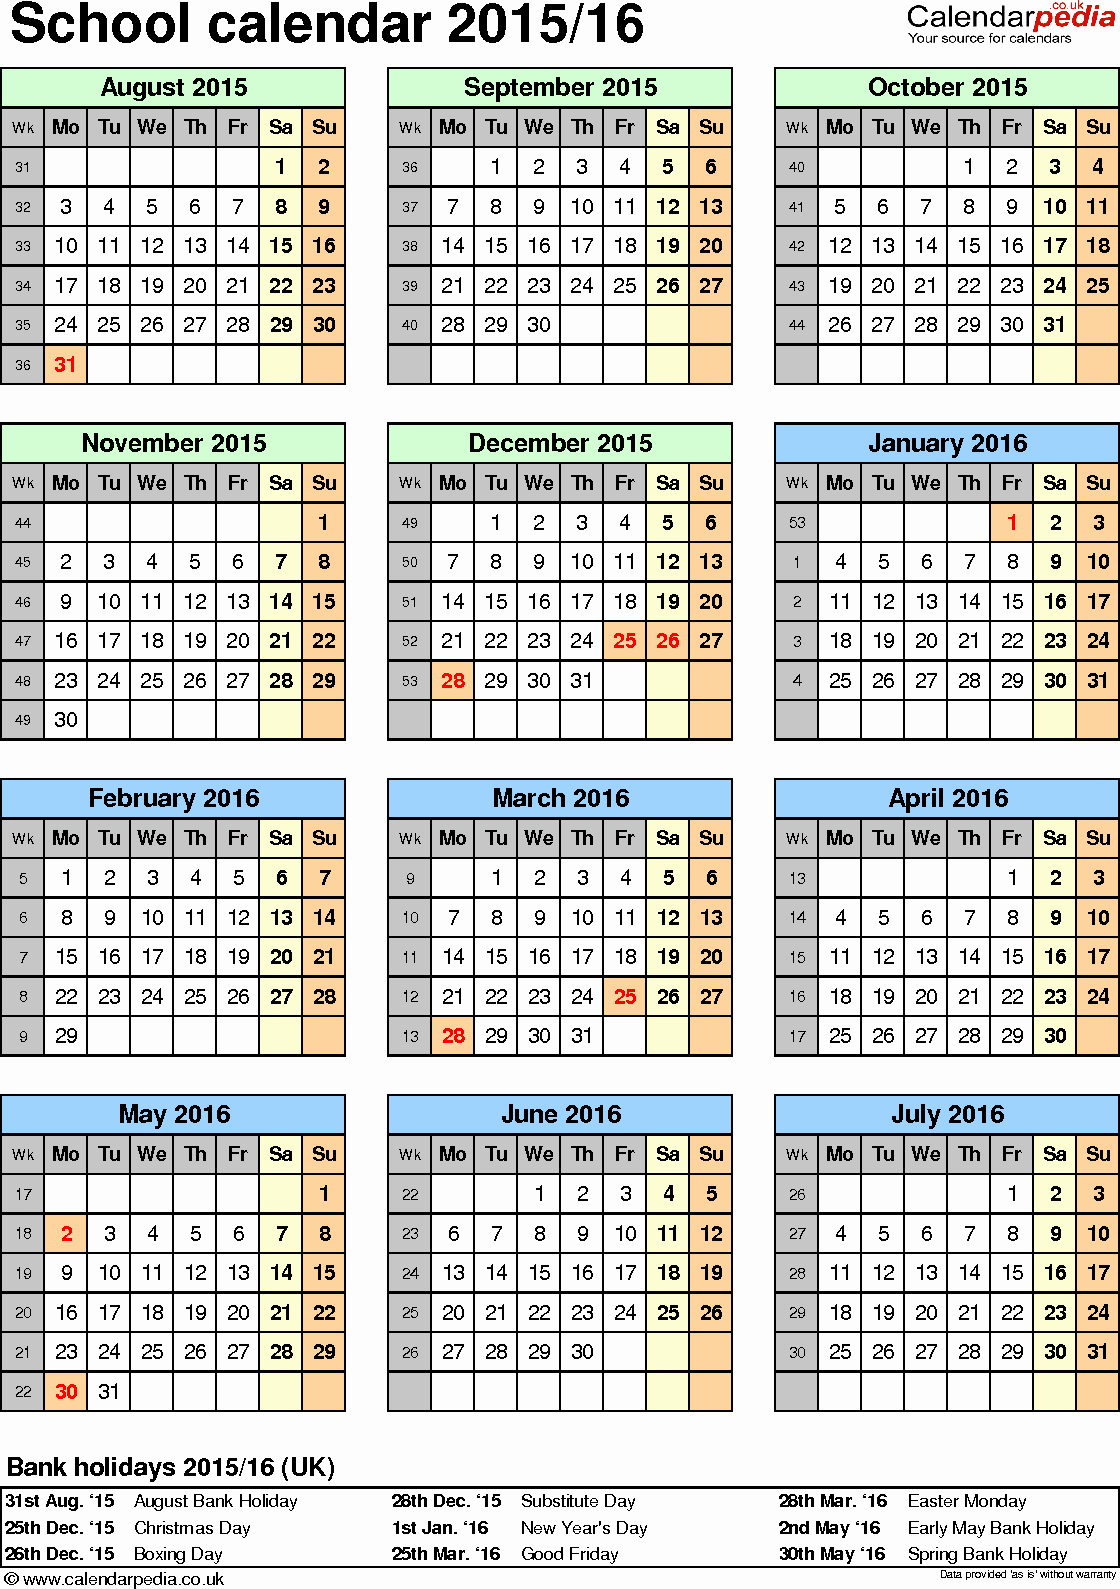 Blank Calendar 2016-17 Beautiful School Calendars 2015 2016 as Free Printable Word Templates